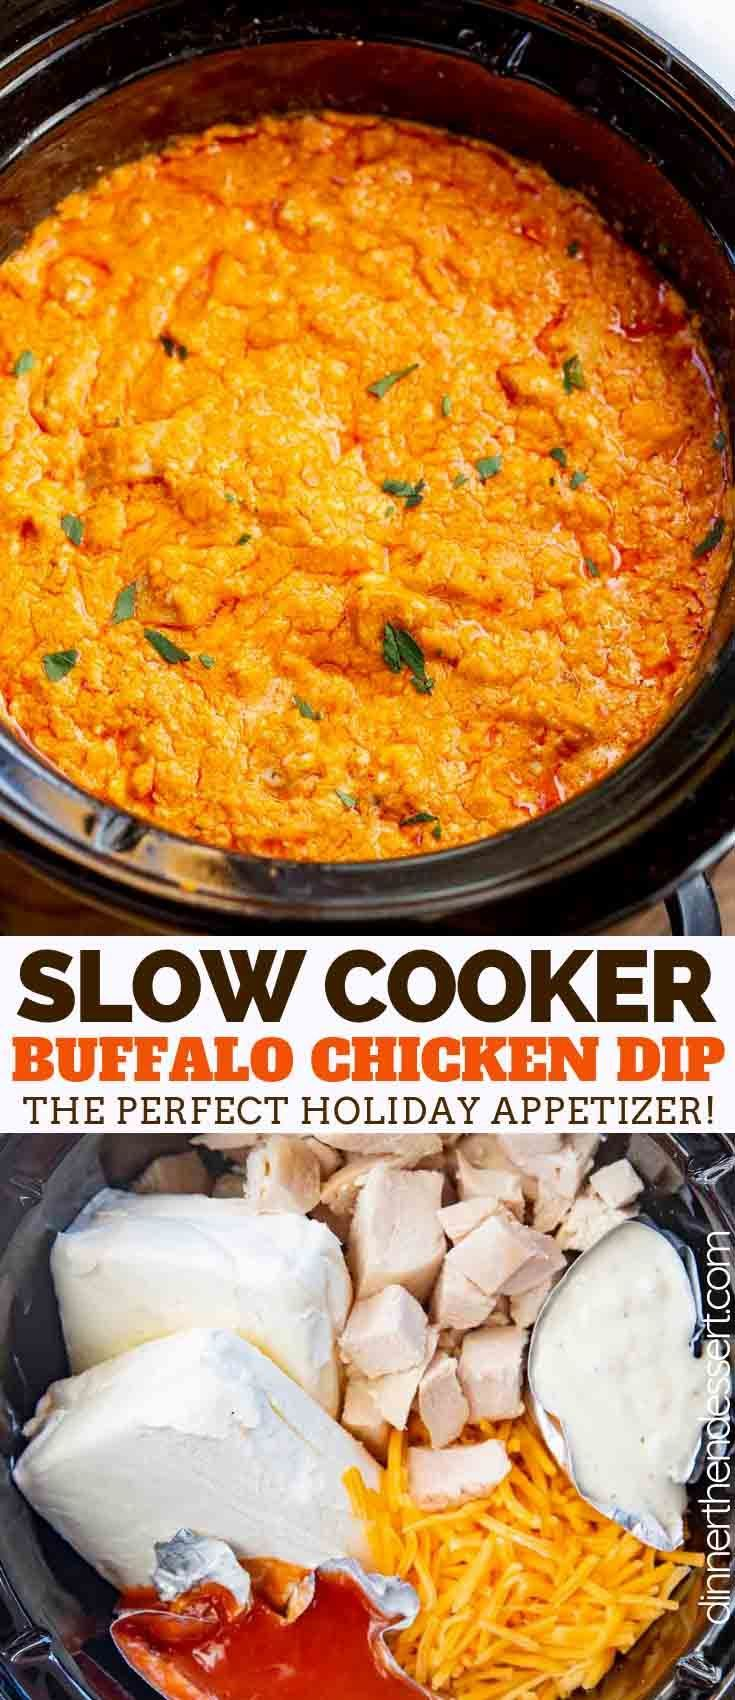 Slow Cooker Buffalo Chicken Dip make with chicken, cream cheese, ranch, and buffal